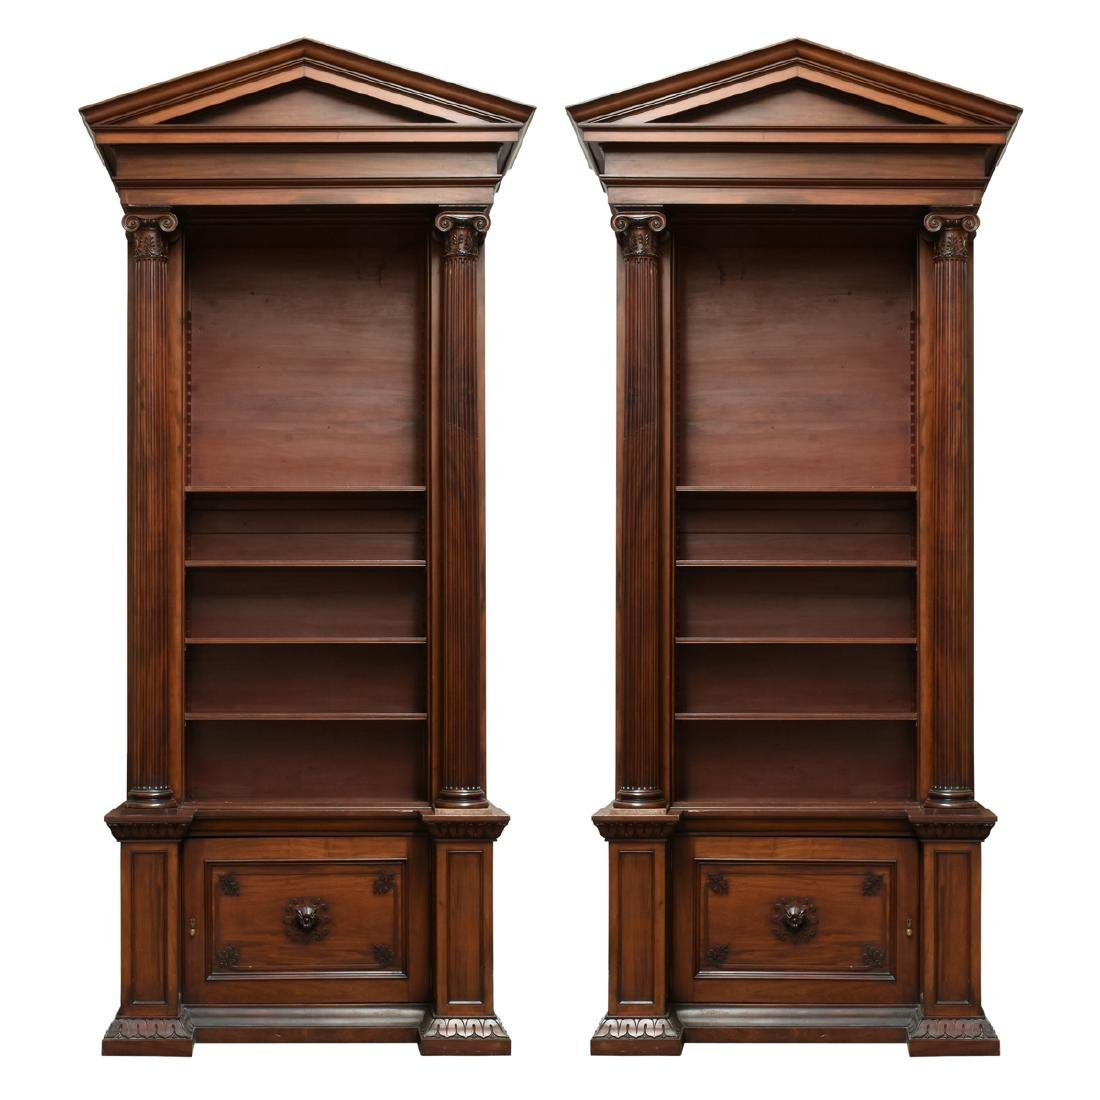 A MONUMENTAL PAIR OF REGENCY STYLE MAHOGANY BOOKCASES,